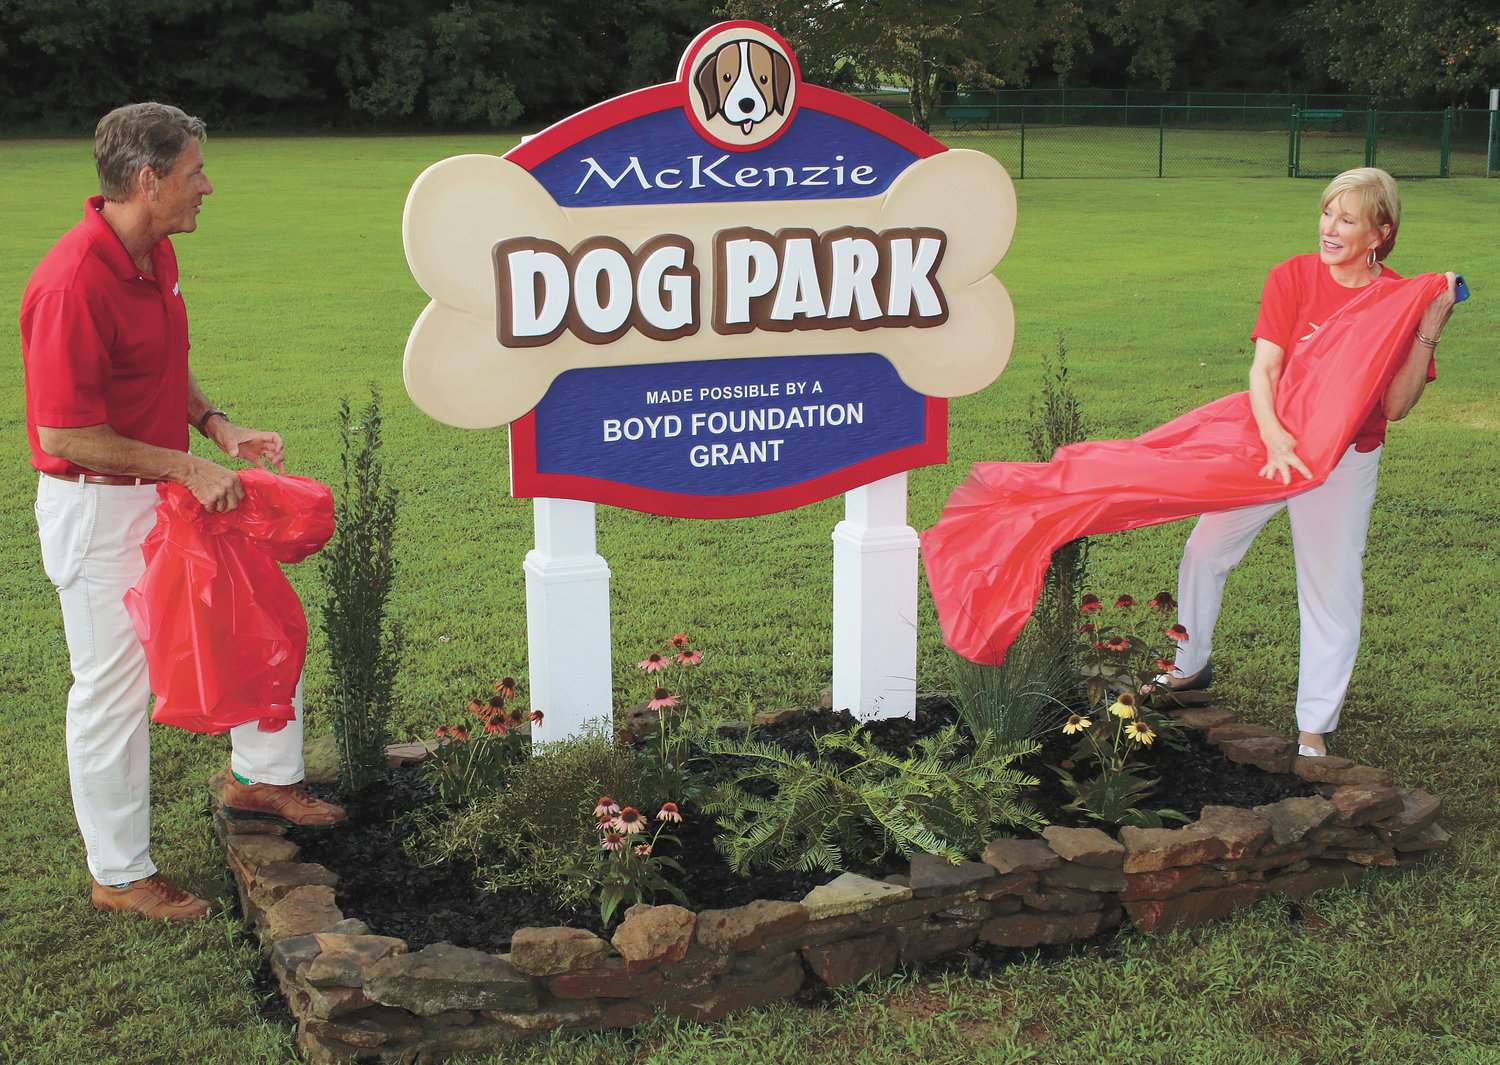 Randy Boyd and Mayor Jill Holland unveil the new sign, designed by Elliott's of McLemoresville. The dog park is free to use and is located adjacent to McKenzie City Park on Como Street in the year 2019.